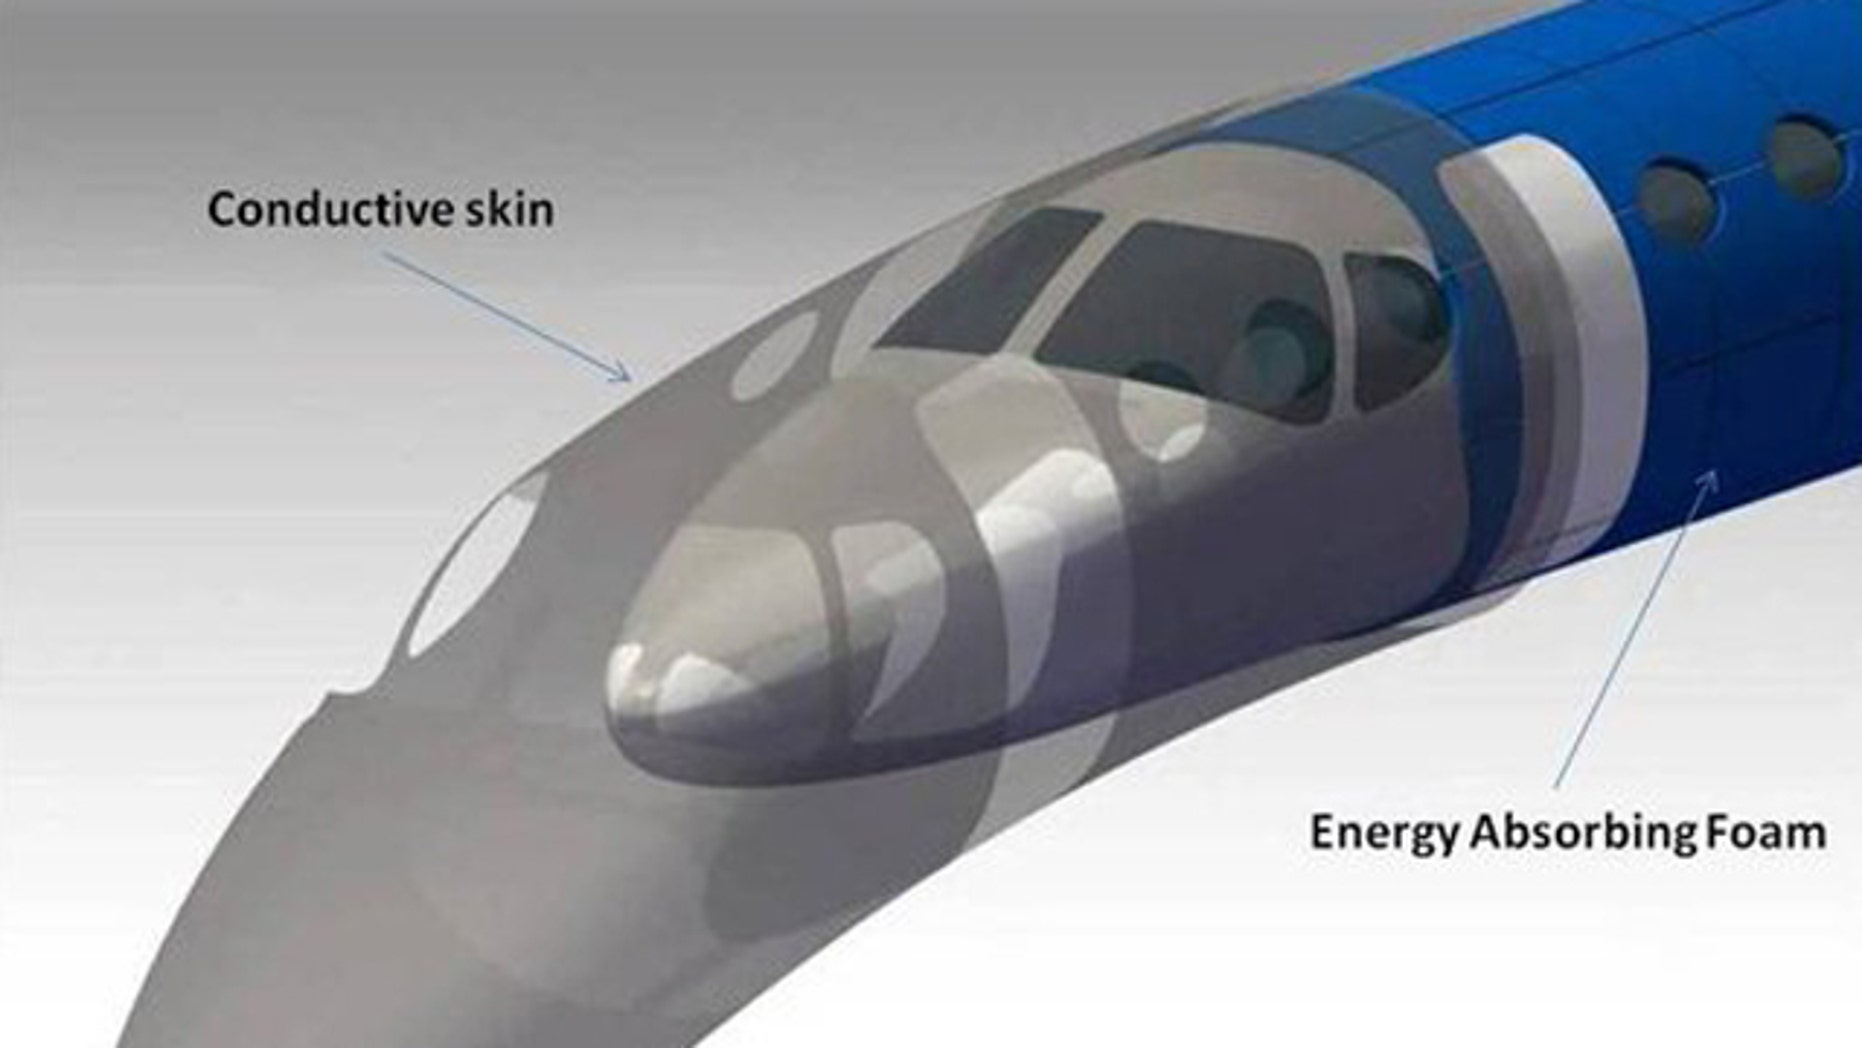 A self-healing 'magic skin' being developed by Cessna would protect the exterior of an aircraft from lightning, extreme temperatures, and more.